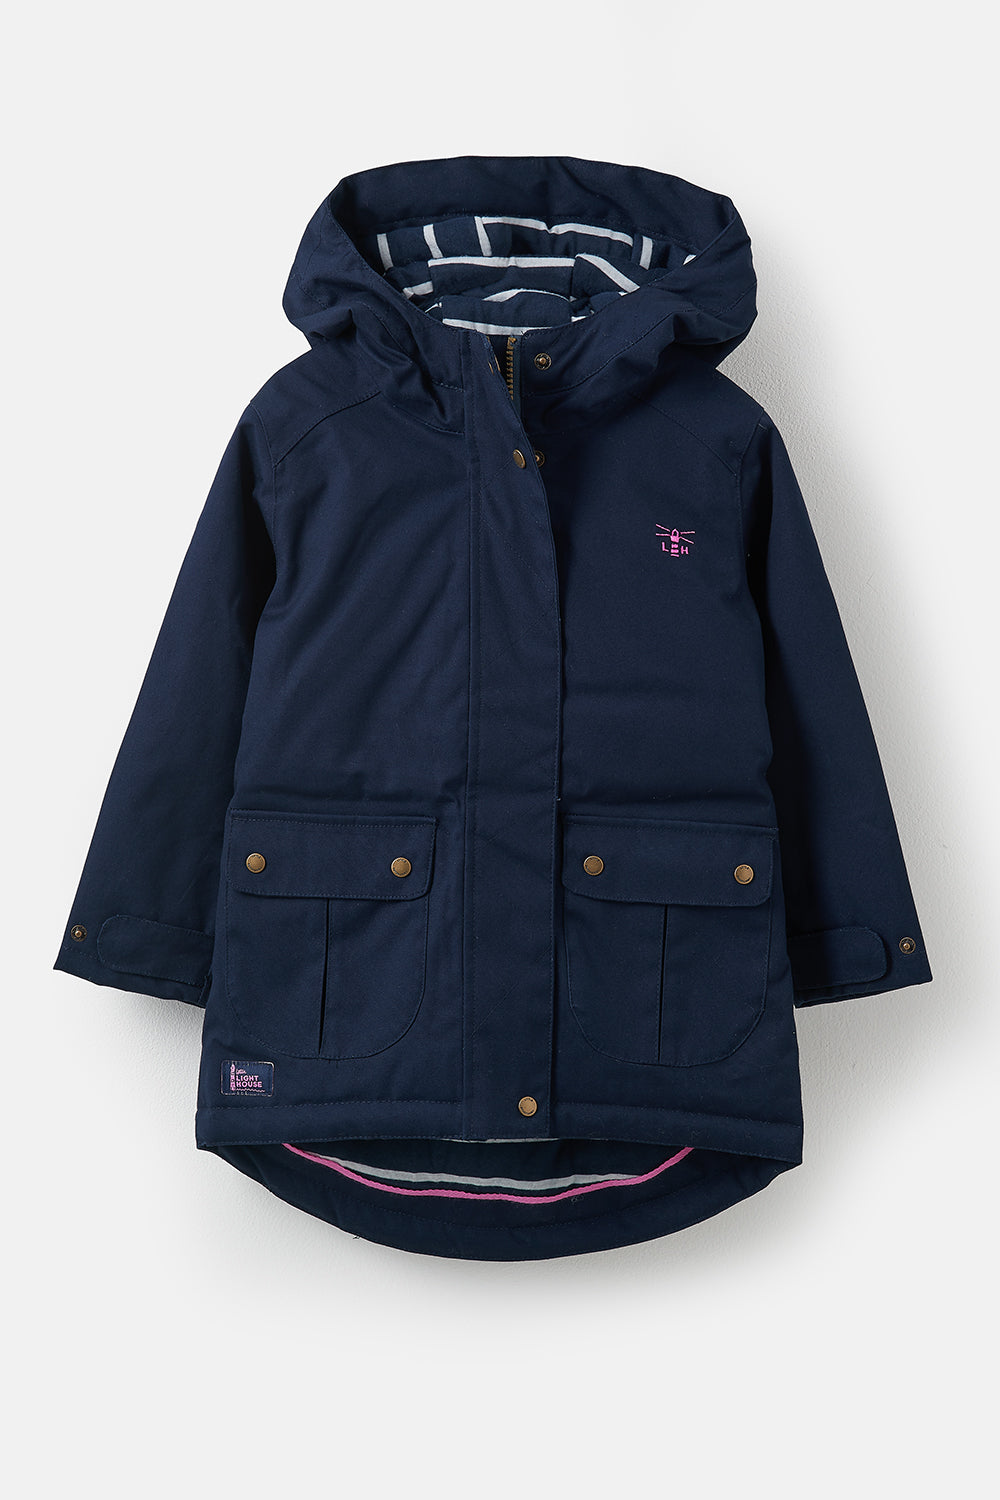 Lighthouse Emma Girls Warm Waterproof Raincoat - Navy